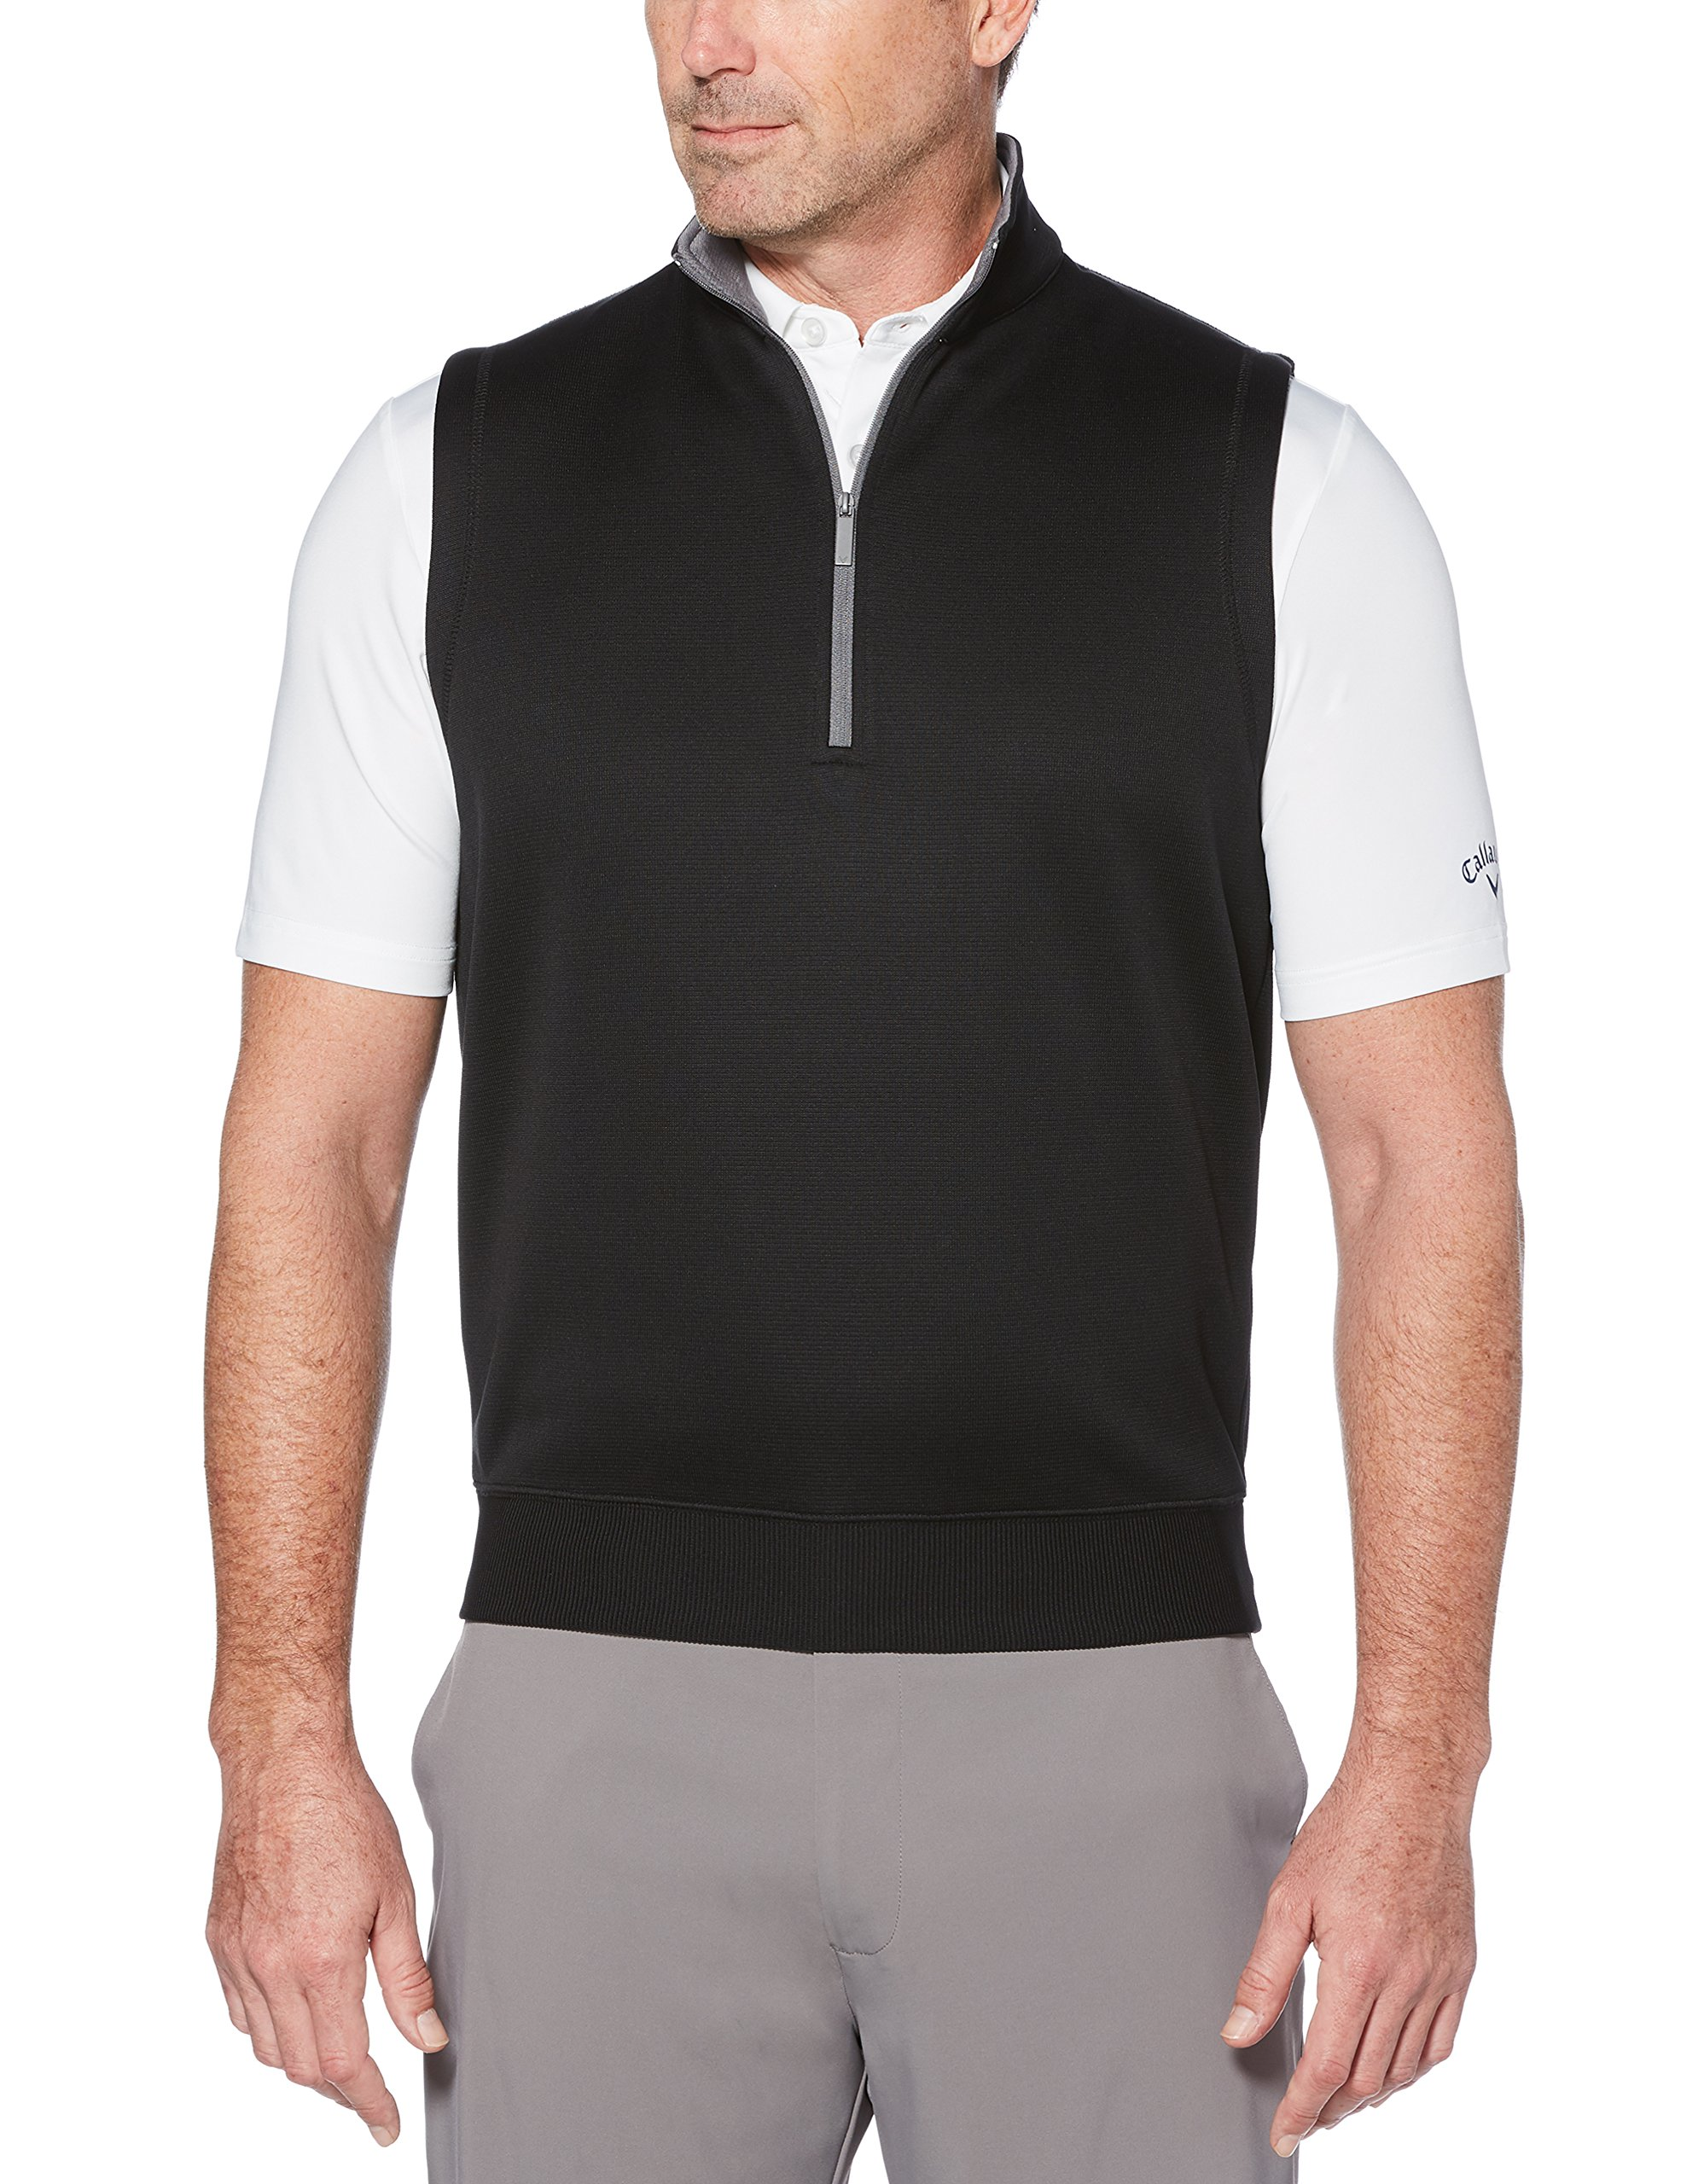 Callaway Men's Water Repellent 1/4 Zip Golf Vest, Caviar, Large by Callaway